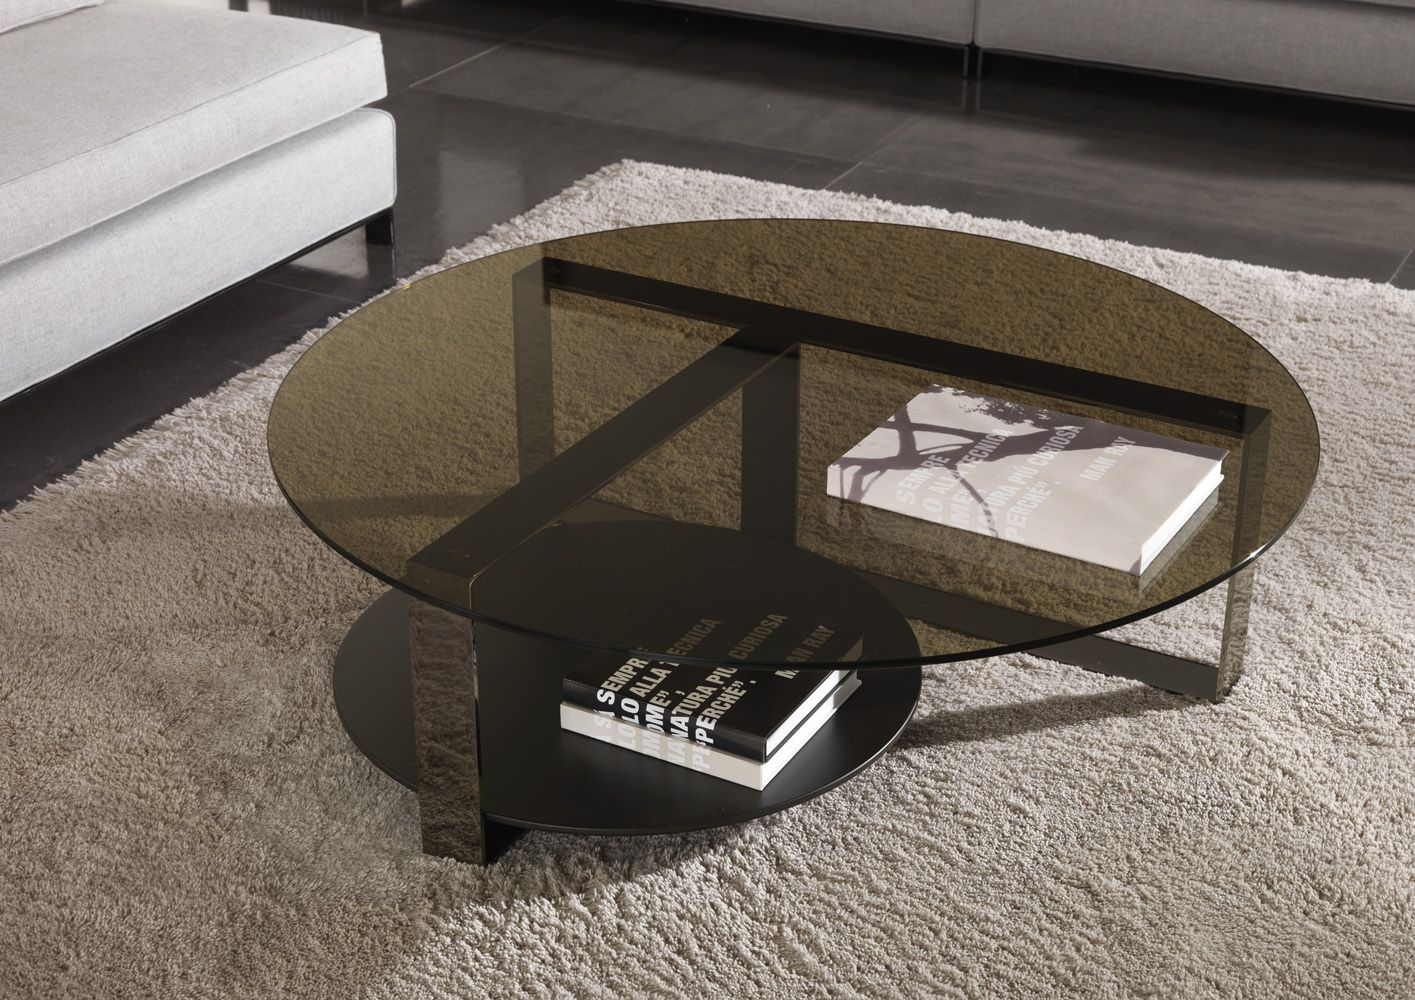 White Rug And Glass Top Table For Best And Cool Minotti Huber Coffee Table Design Coffee Table Glass Top Coffee Table Interior Decoration Accessories [ 1000 x 1415 Pixel ]